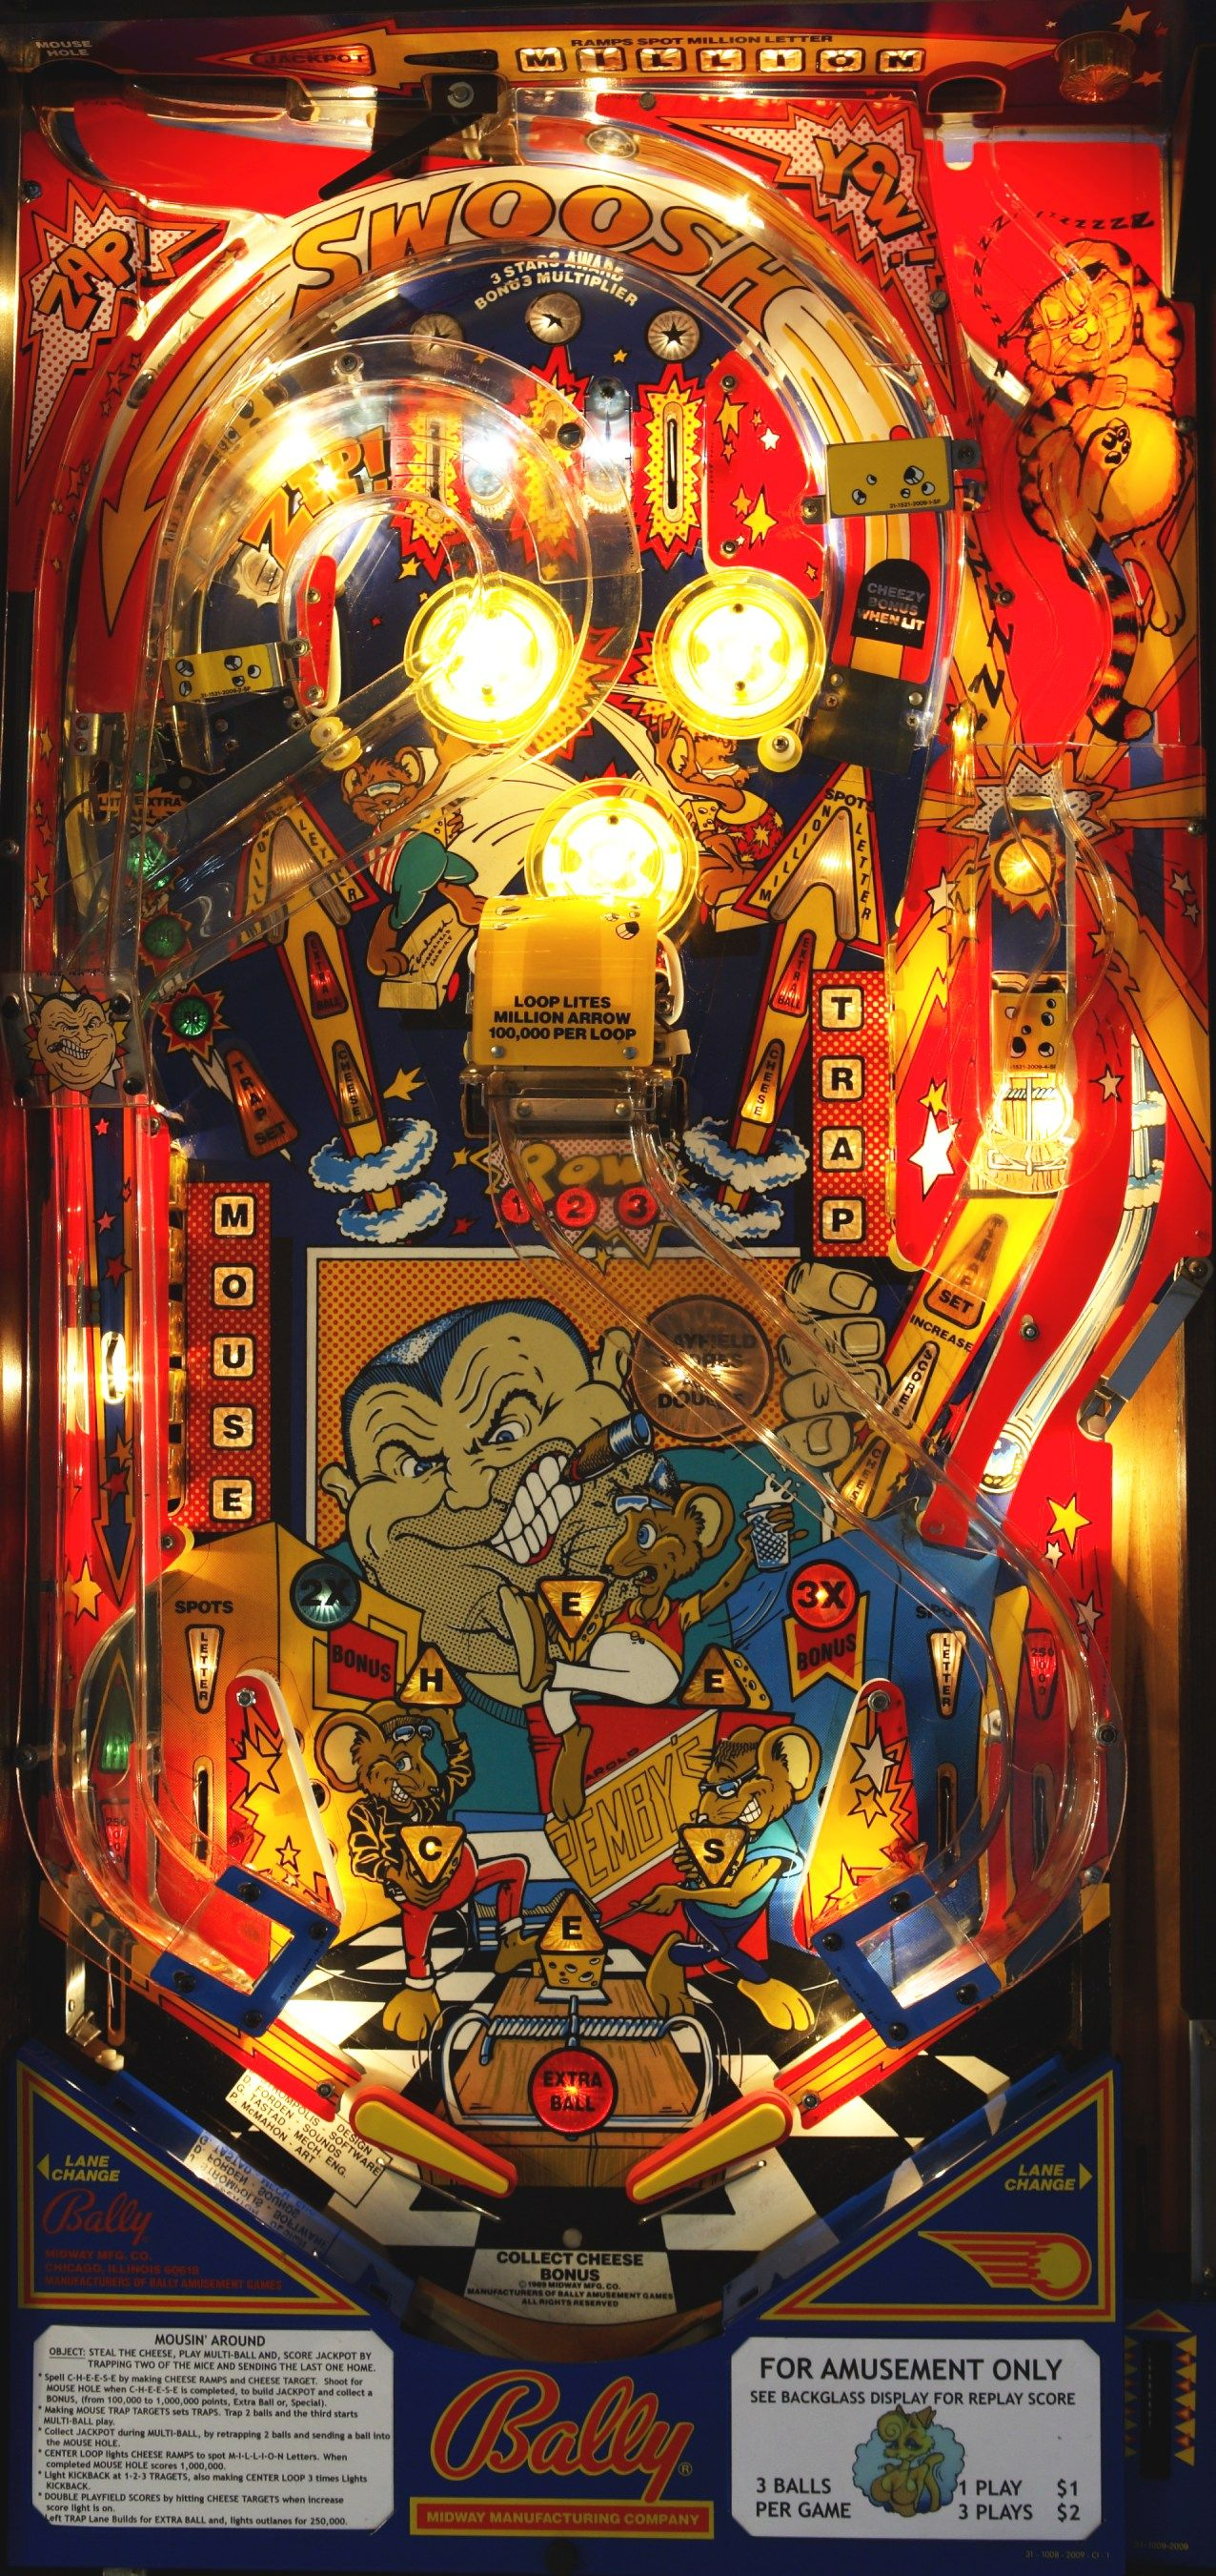 This game was just sold via www WeBuyPinball com (Not the